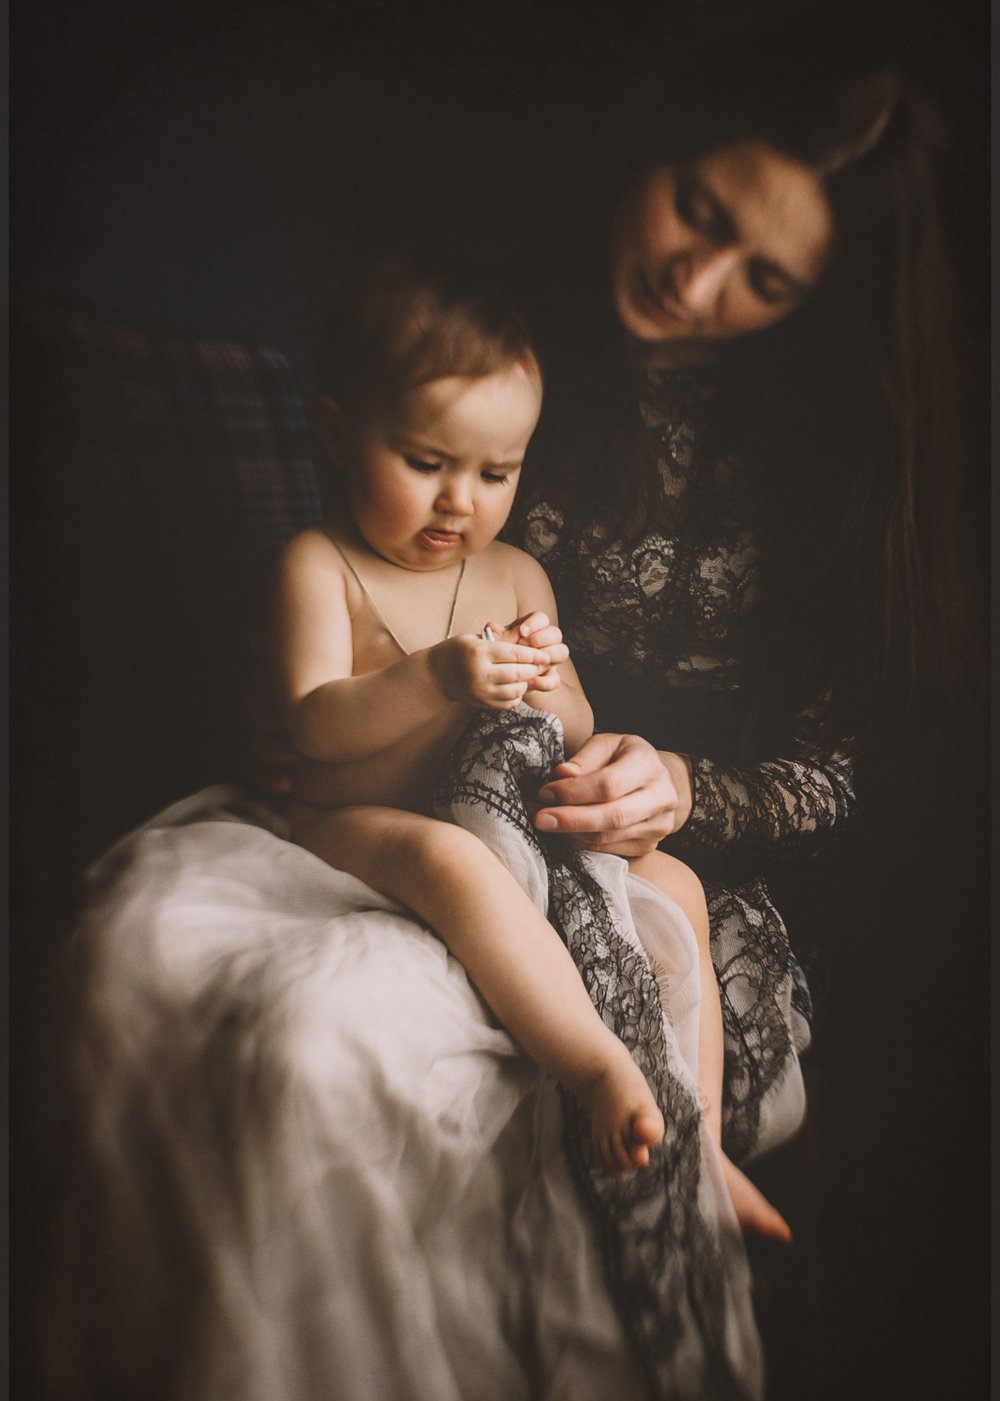 mother and child by anita perminova amsterdam portrait photographer